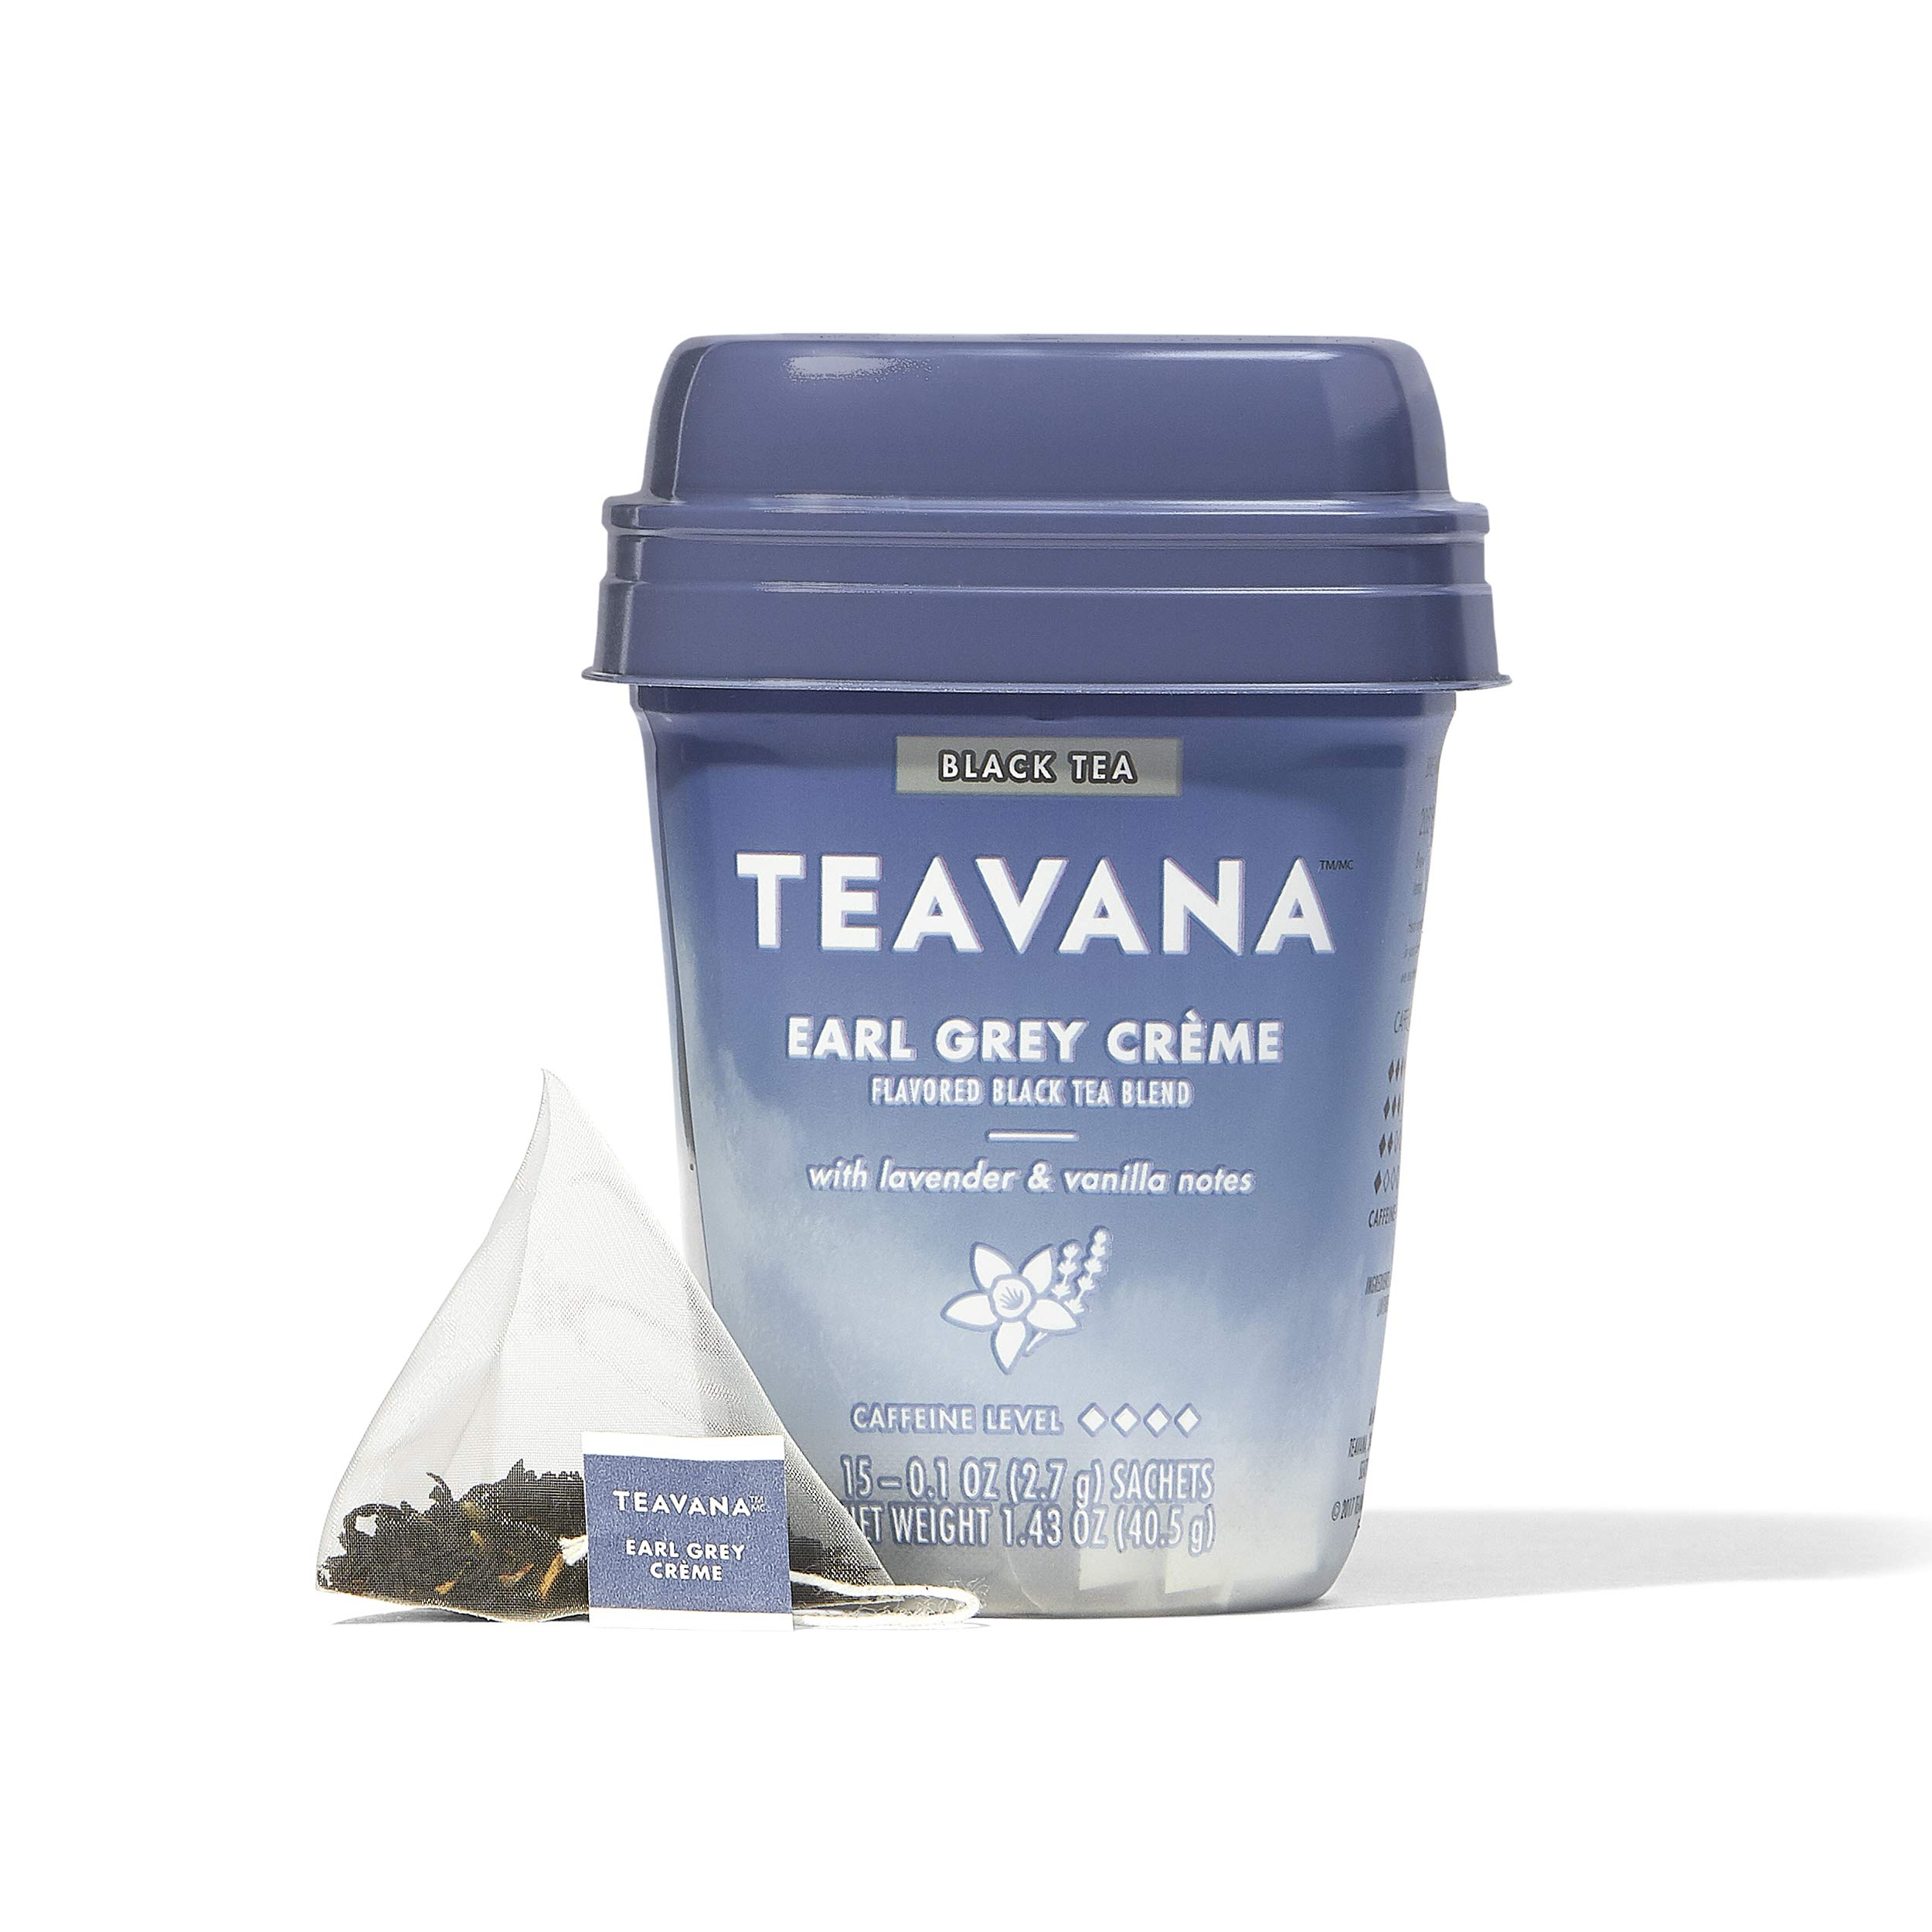 Teavana Earl Grey Crème, Black Tea With Lavender and Vanilla Notes, 60 Count (4 packs of 15 sachets) by Teavana